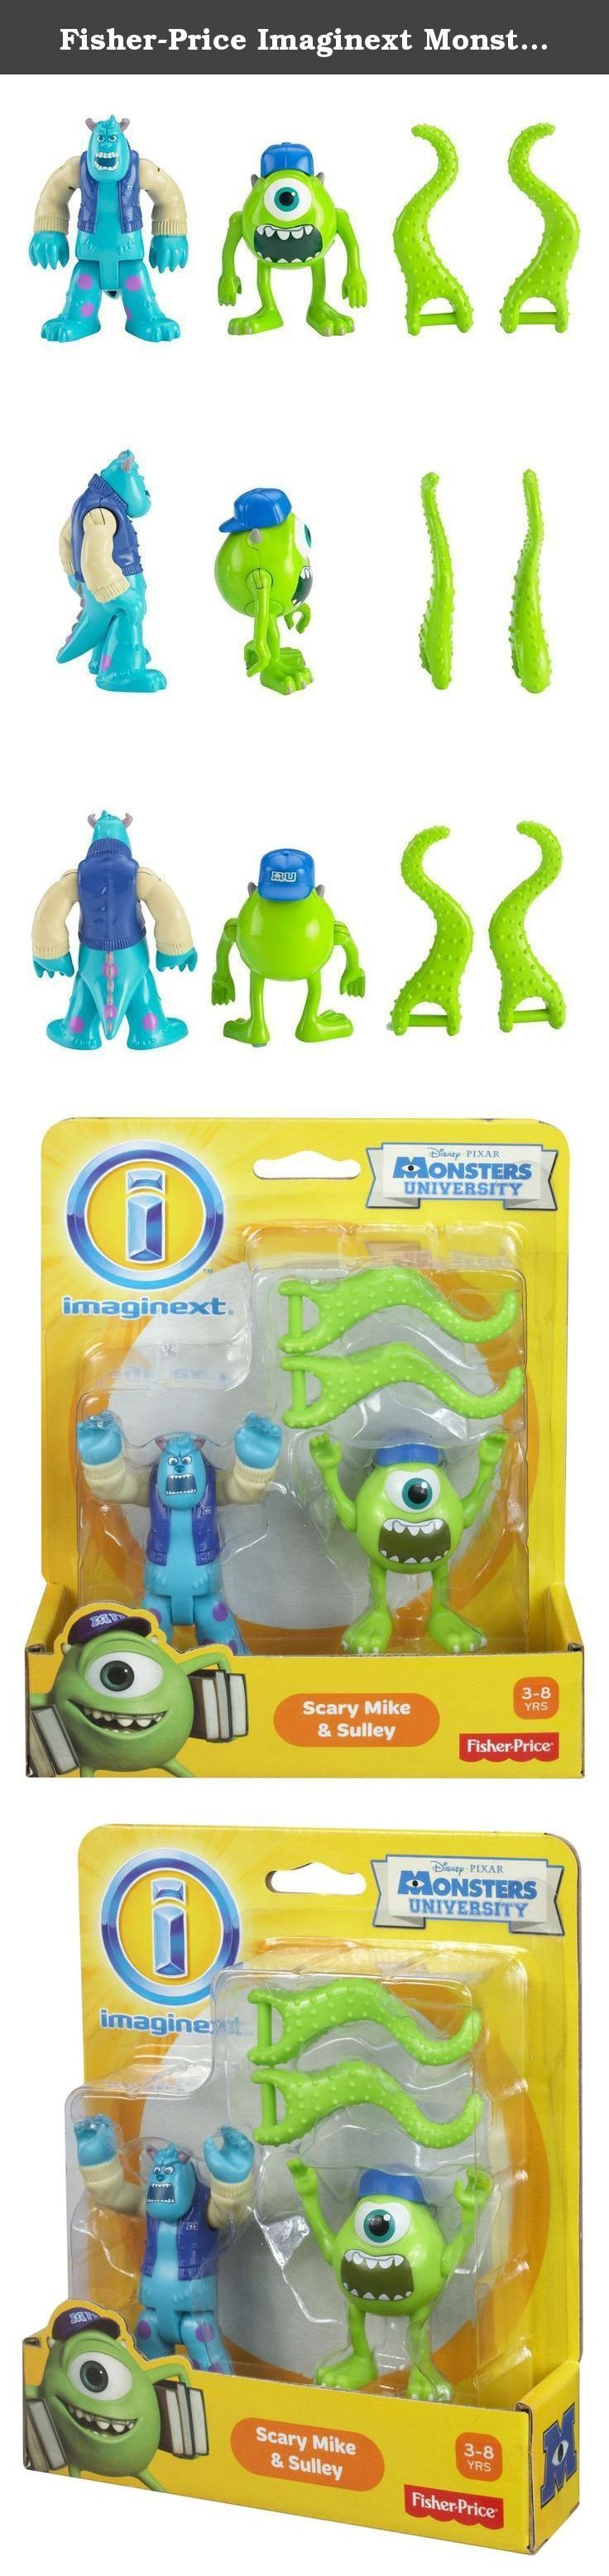 Fisher-Price Imaginext Monster's University Scary Mike & Sulley Playset. Imaginext Disney/Pixar Monsters University Scary Mike & Sulley: The Disney/Pixar movie, Monsters University, tells the story of how Mike and Sulley became friends during their college years at scare school. Scaring takes practice—and Mike needs extra help with tentacles he can hold in each hand! Kids will love re-enacting scenes from the movie with these favorite characters -- or creating new stories of their own. .